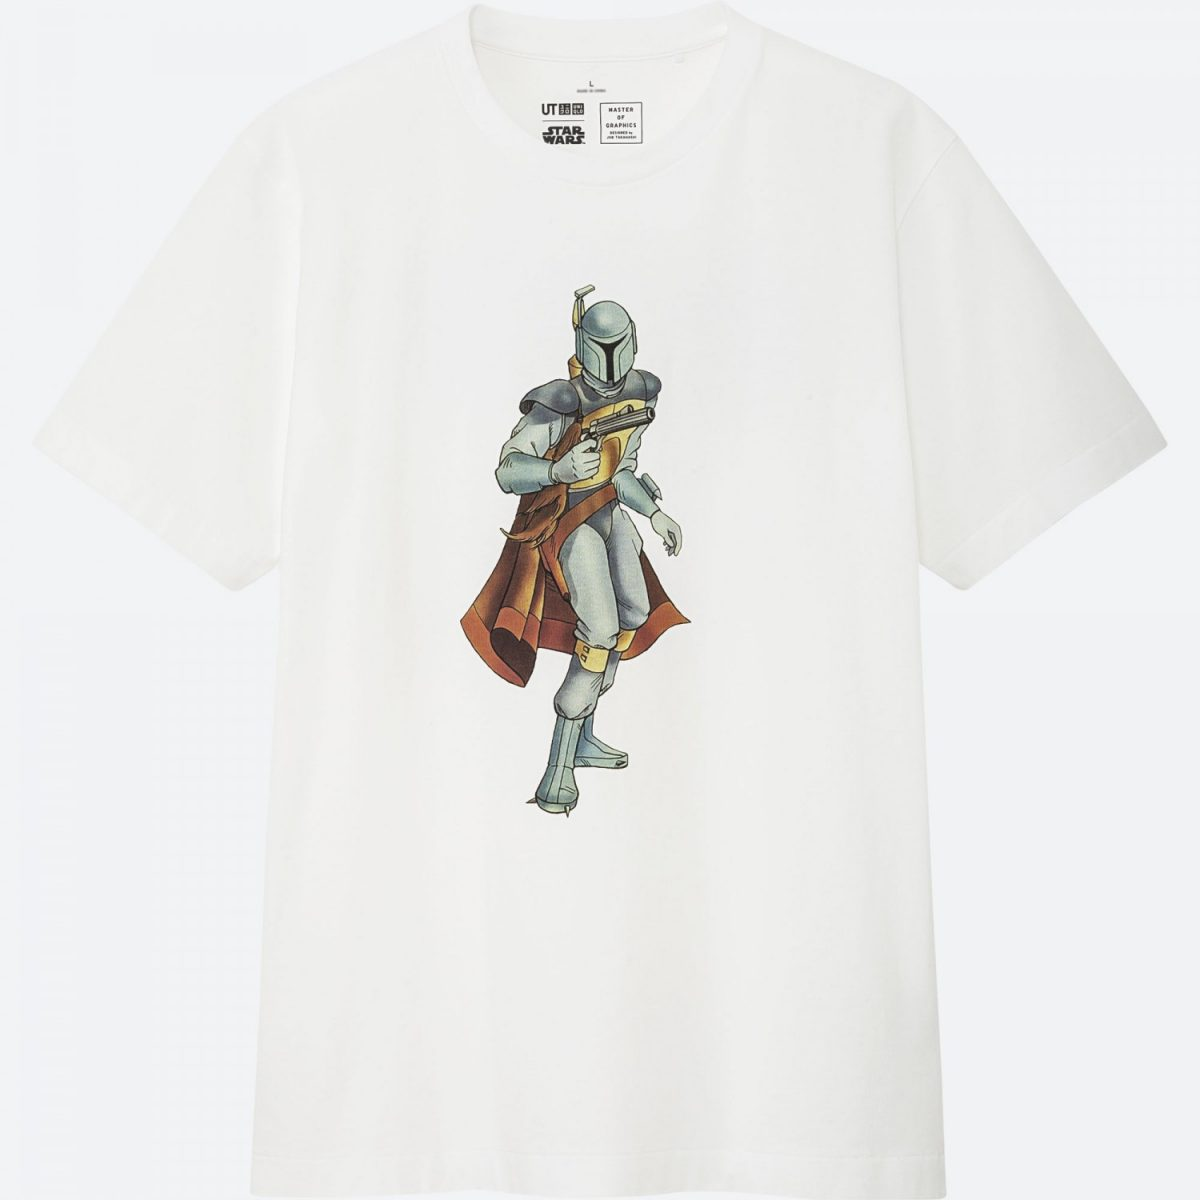 Celebrate May The 4th In Style With These New Uniqlo Star Wars Tees